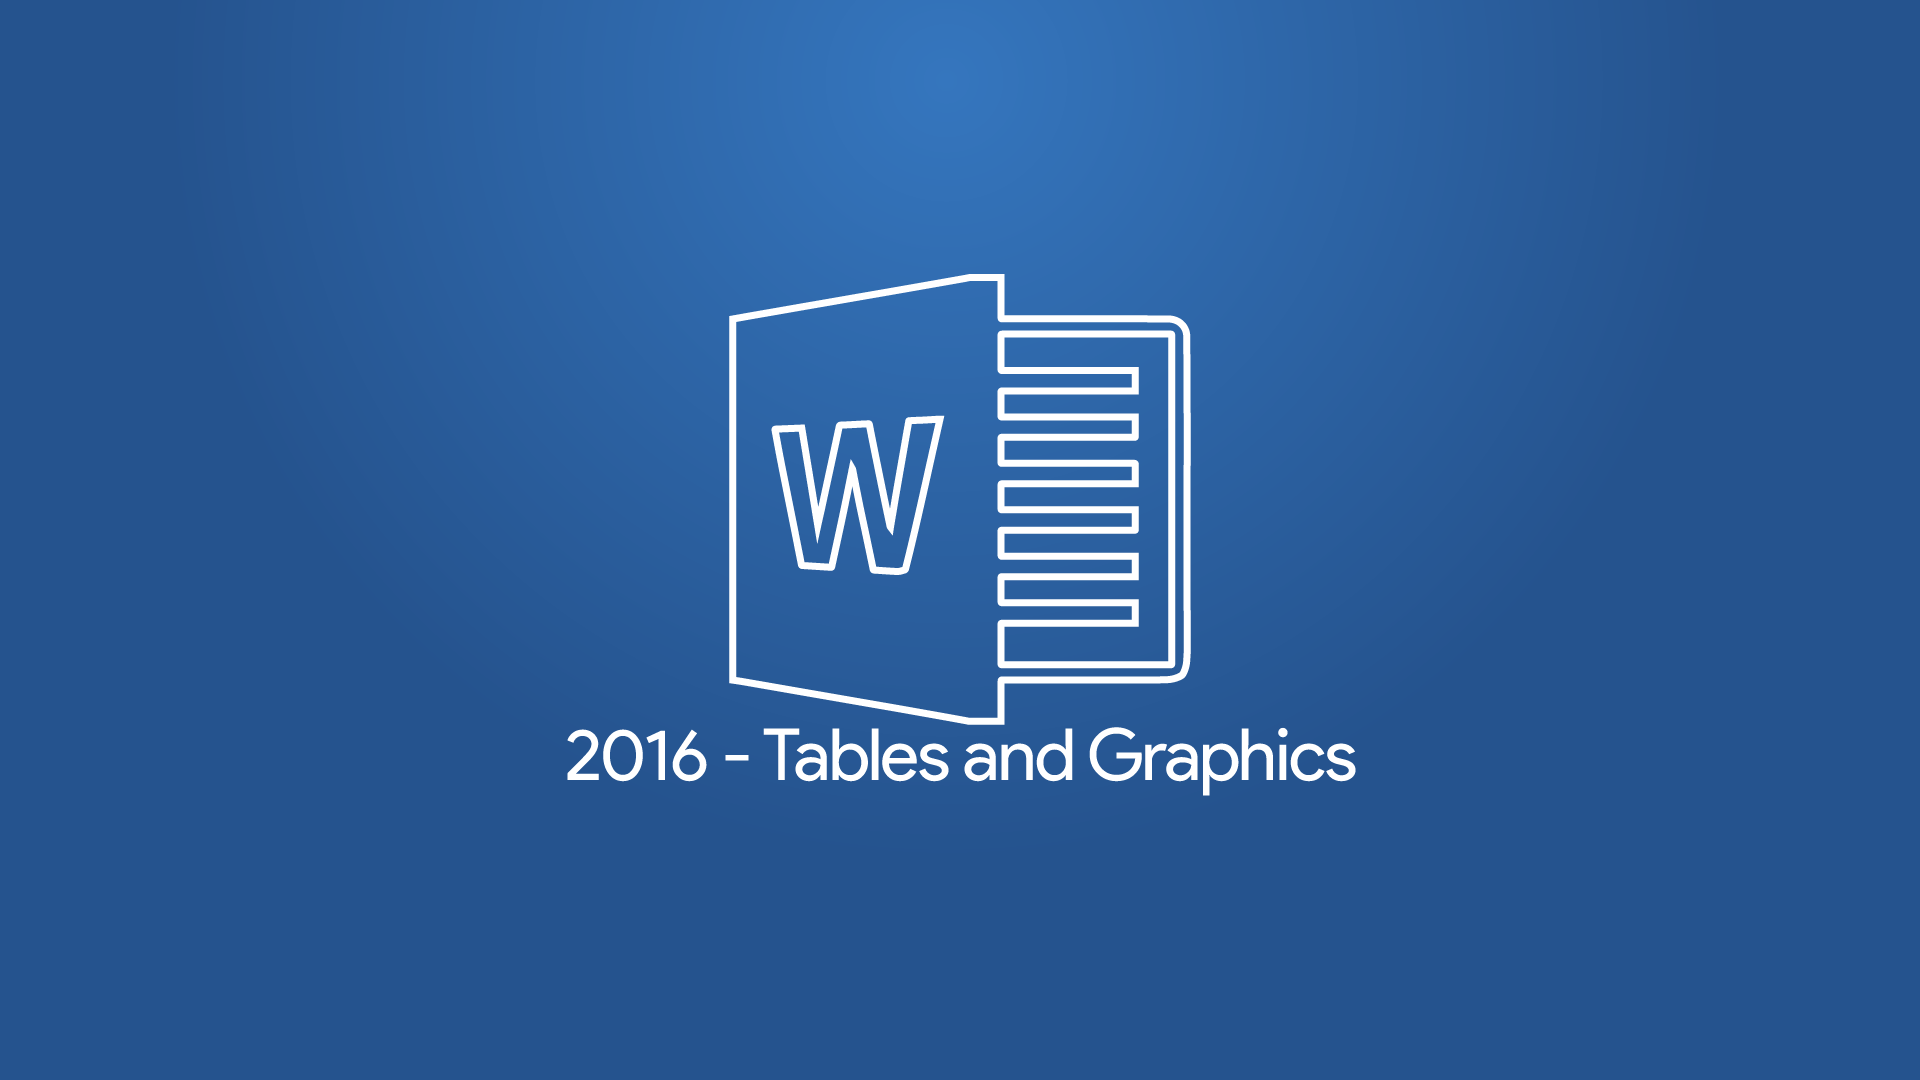 Word 2016 - Tables and Graphics